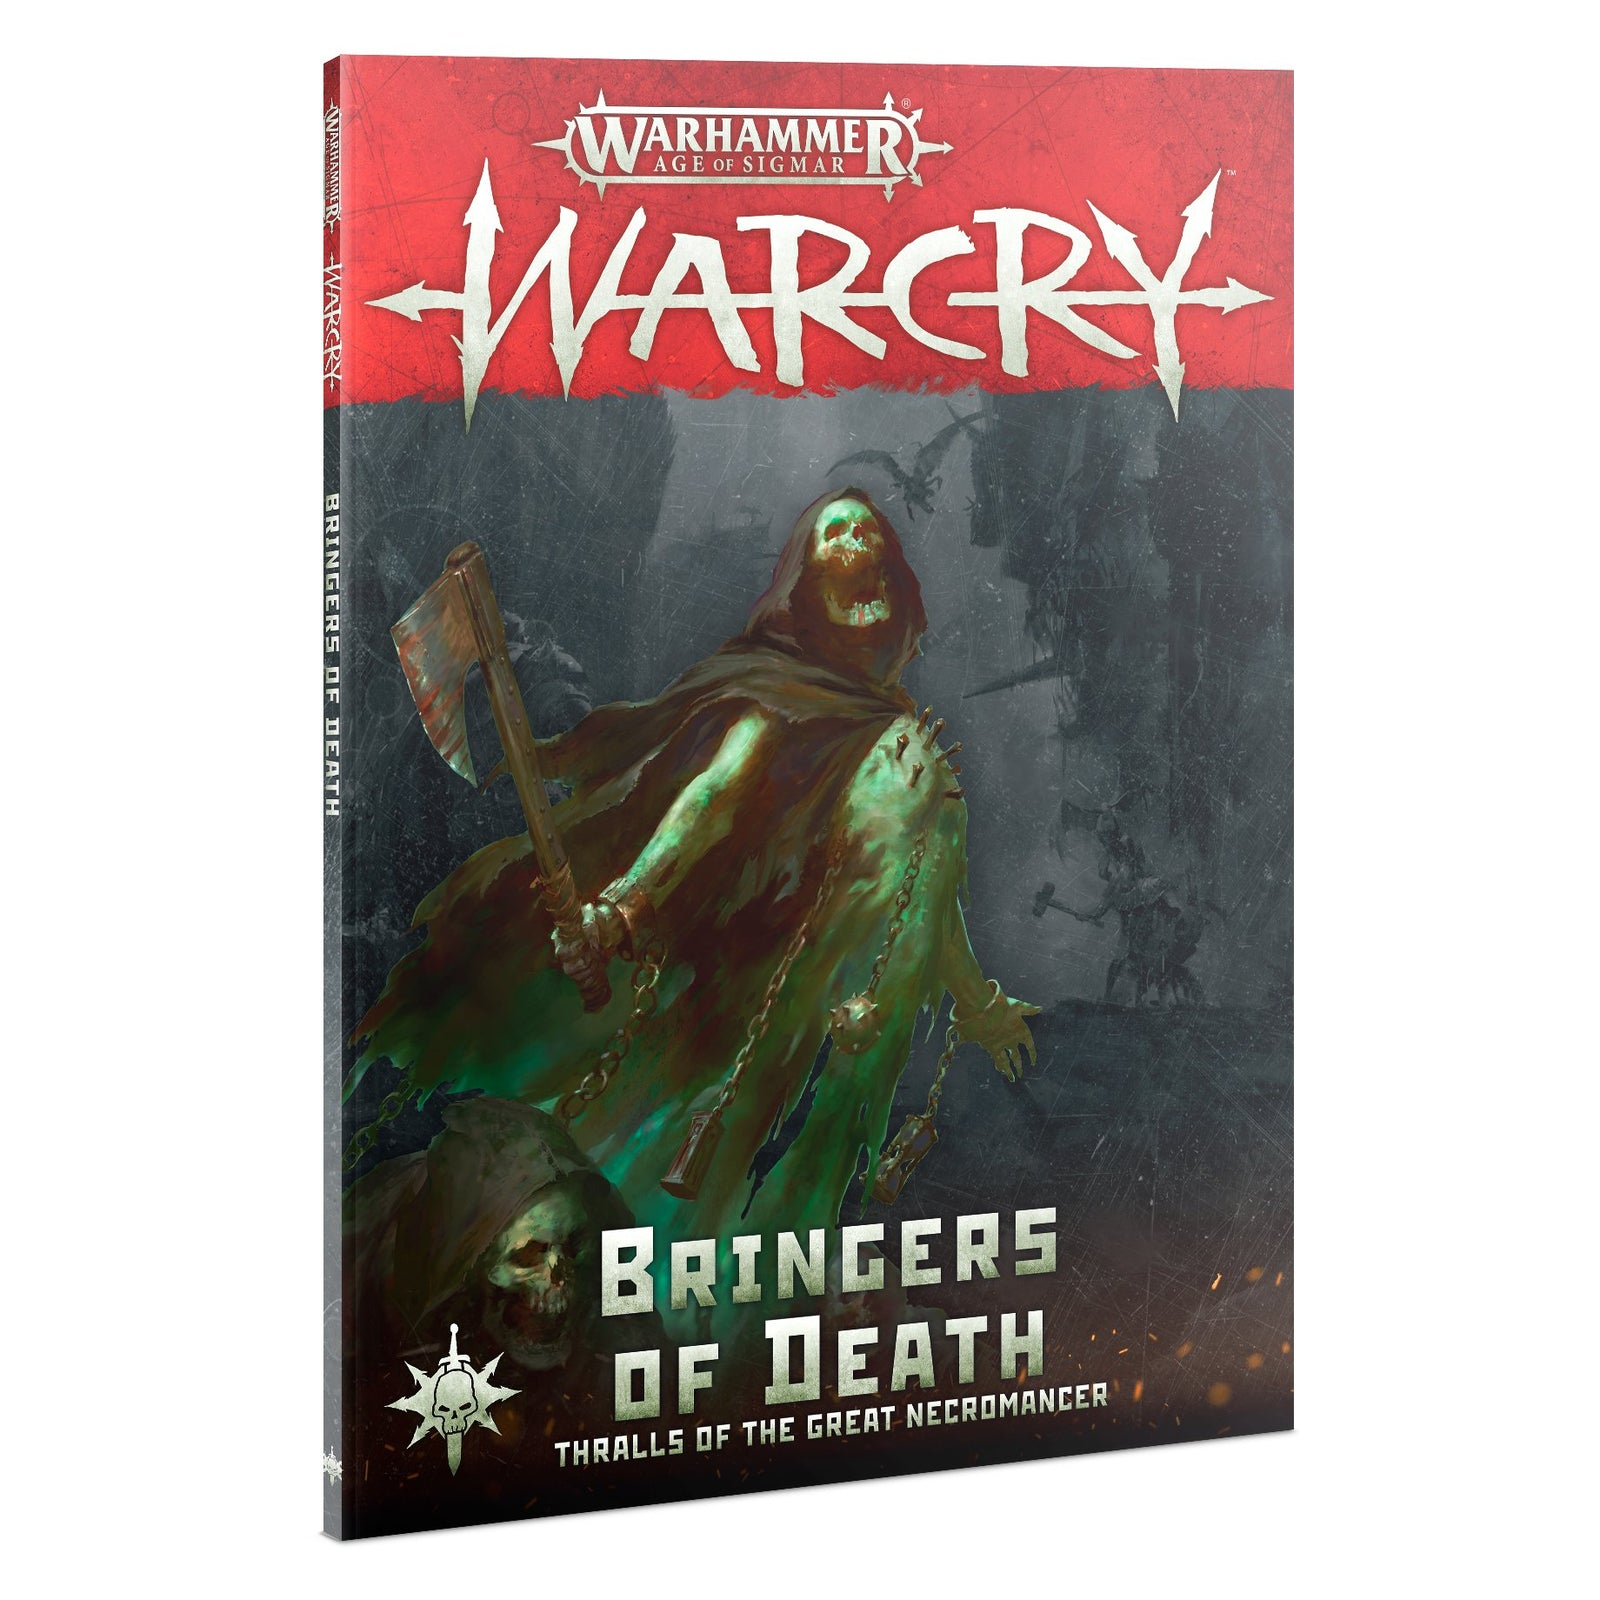 Product Image for Bringers of death